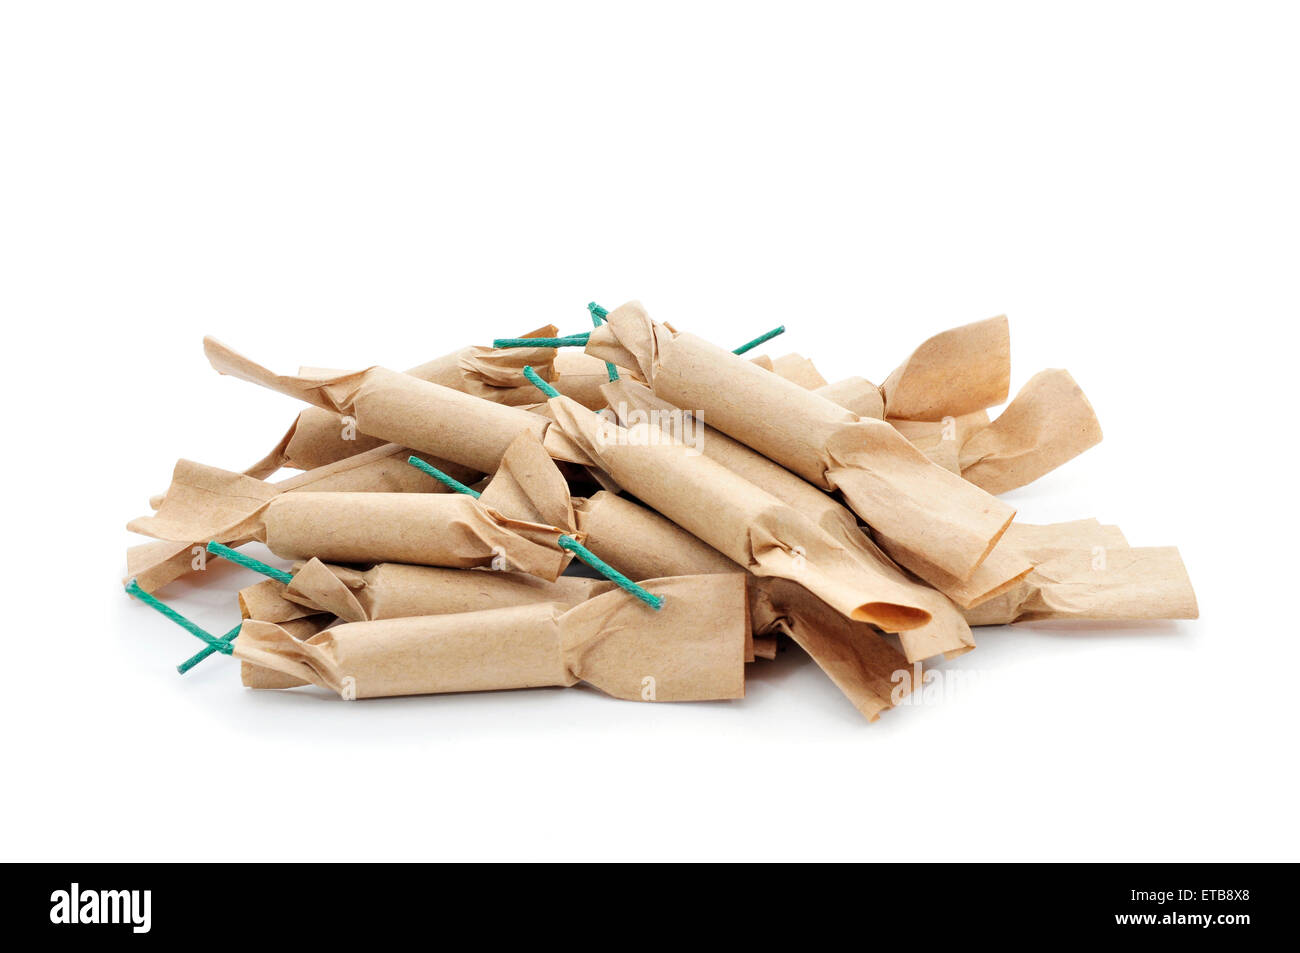 some brown firecrackers with green fuse on a white background - Stock Image